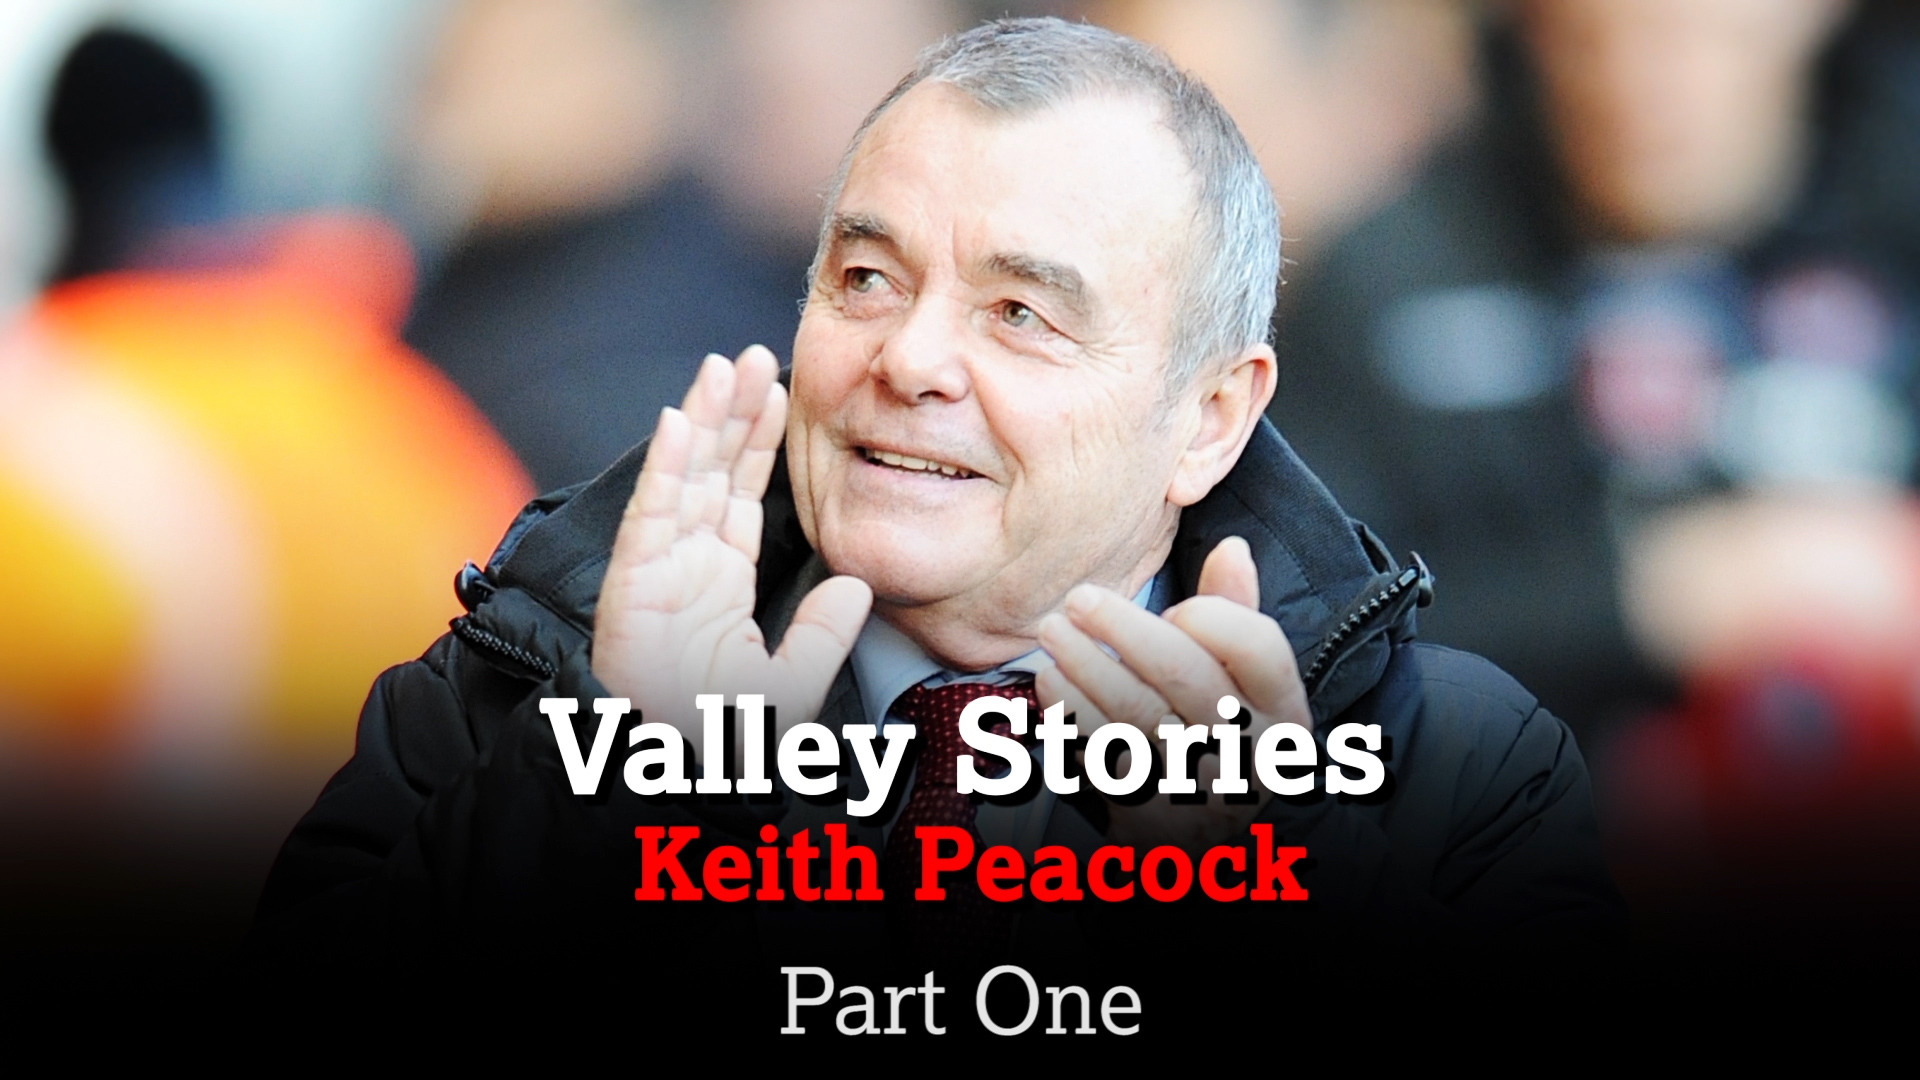 VALLEY STORIES | Keith Peacock Part One